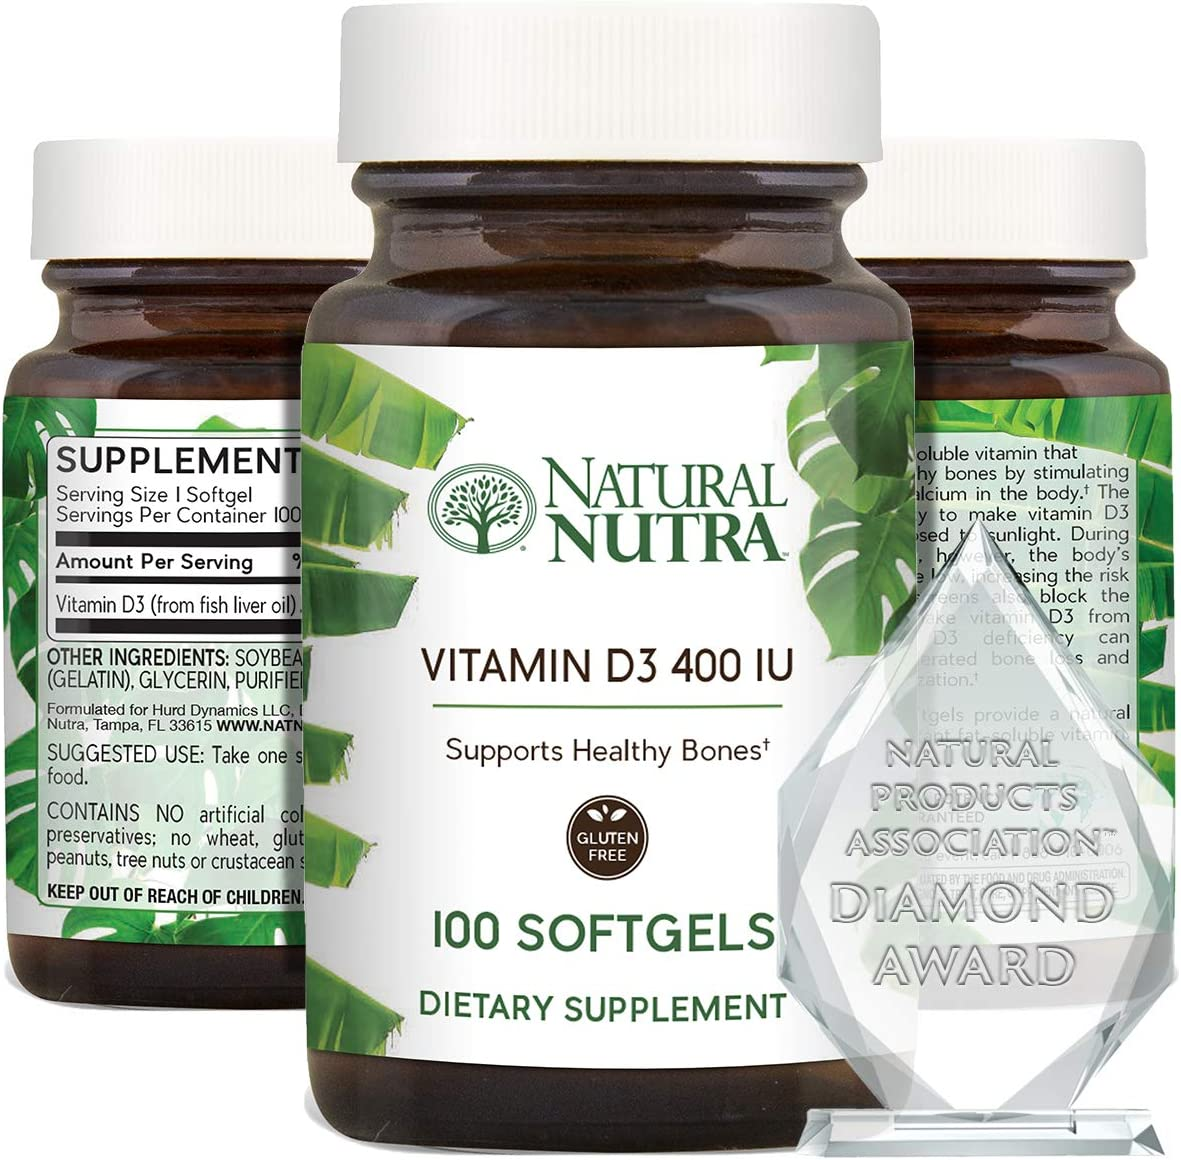 Natural Nutra Supreme Vitamin D3 Weekly update Max 88% OFF Softgels for IU Supplement 400